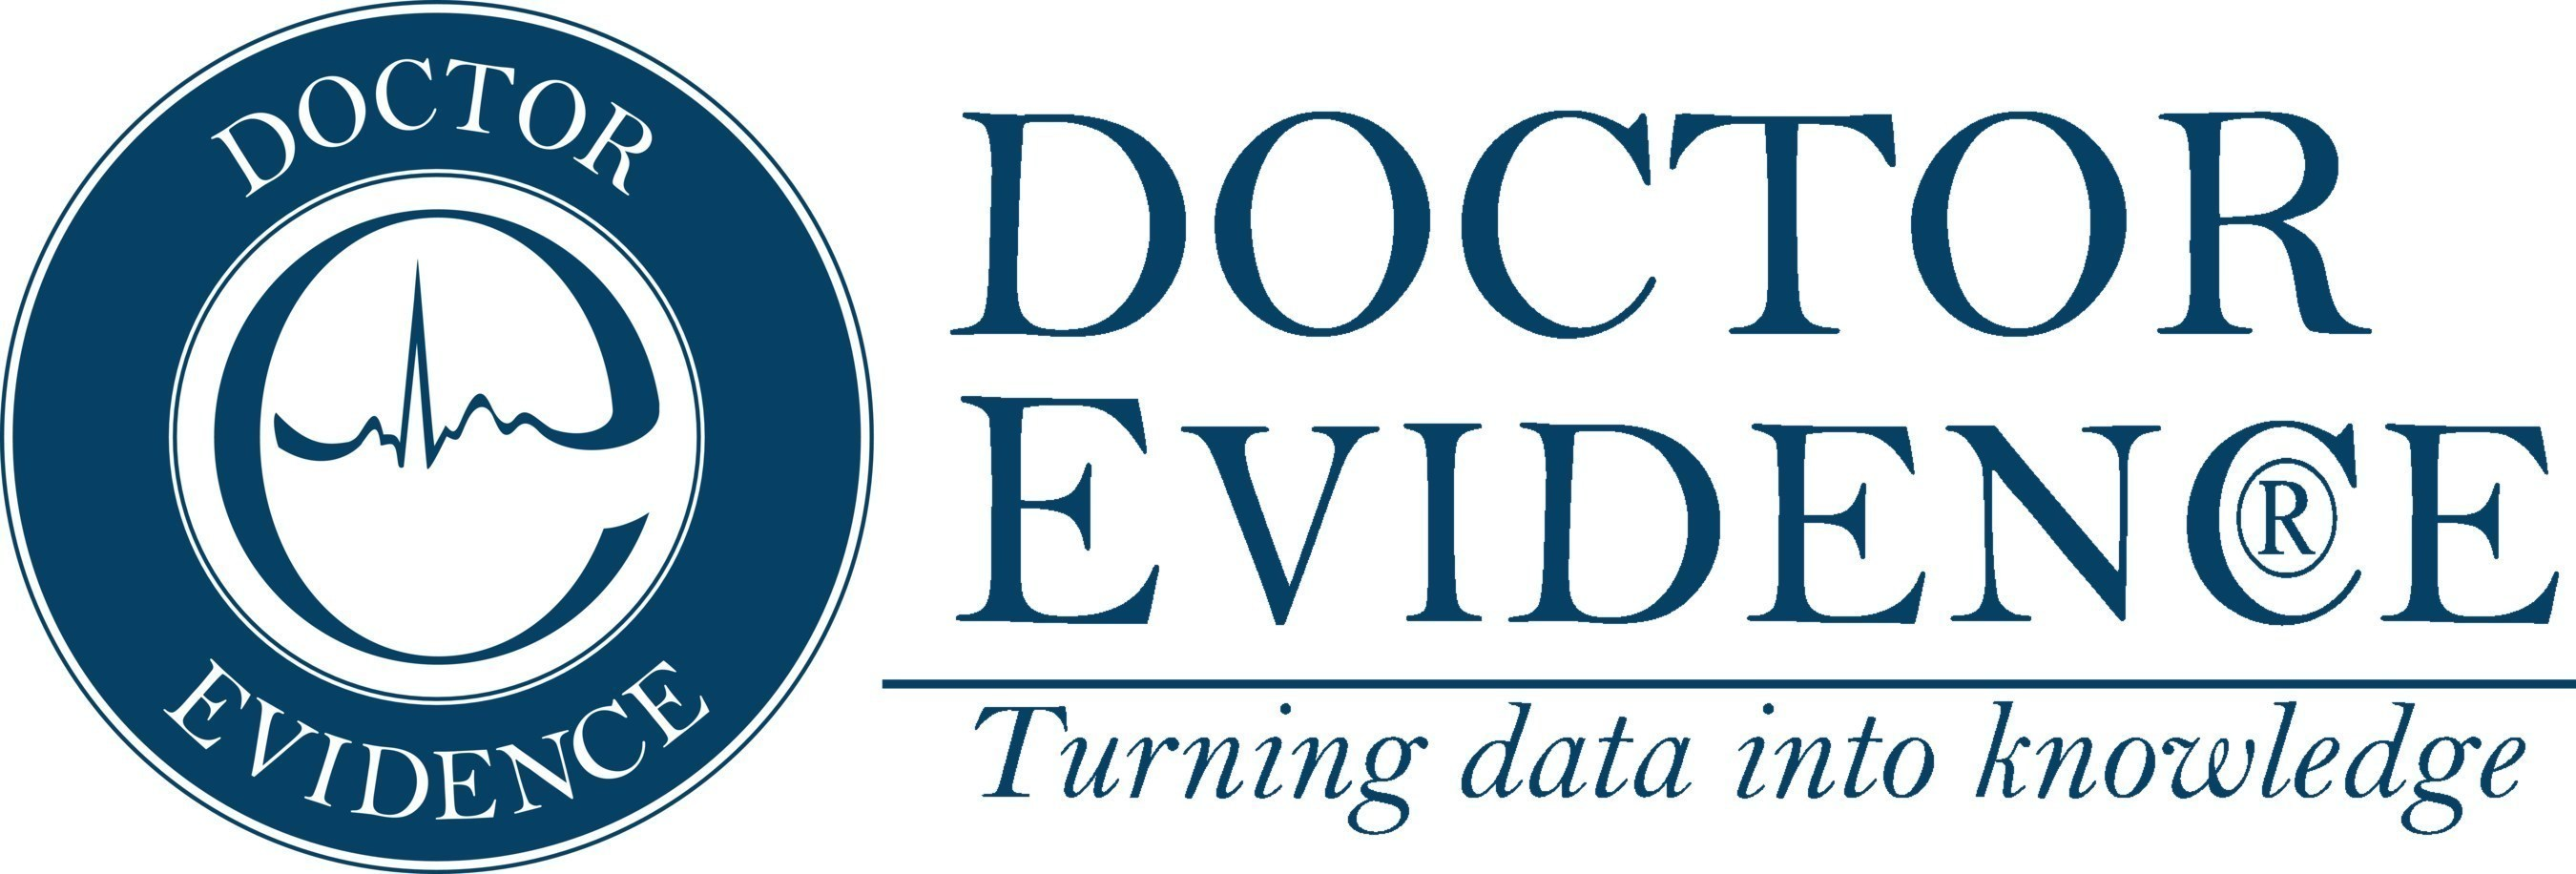 Doctor Evidence Launches Site To Test And Reproduce Systematic Evidence Reviews